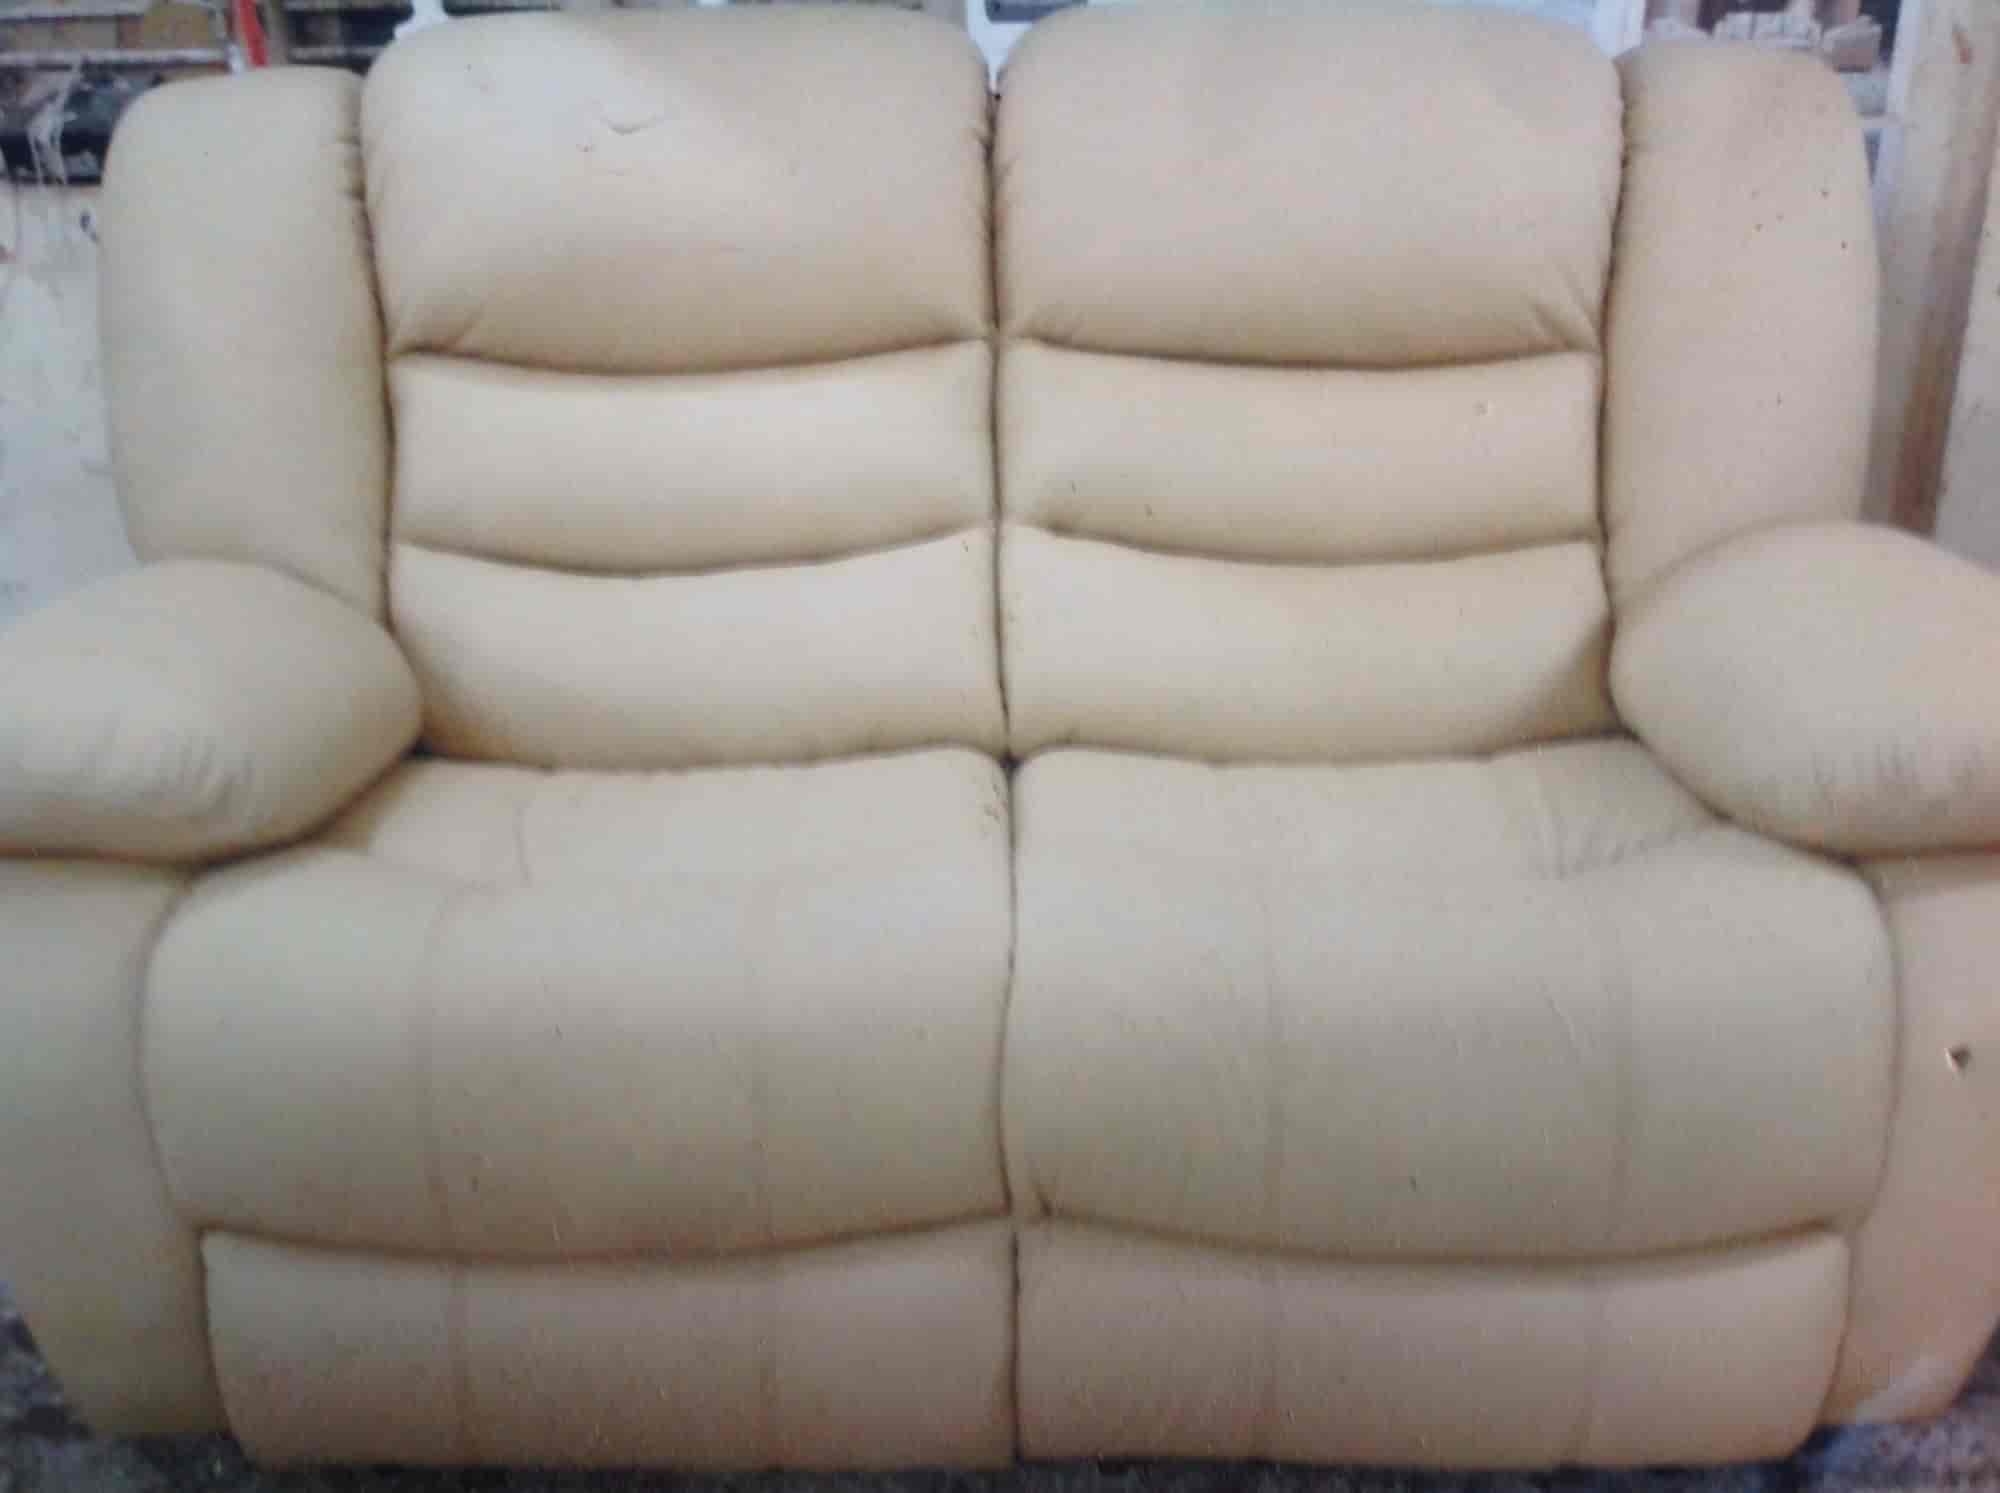 Sofa Hussen Hussen Enterprises Photos Mathikere Bangalore Pictures Images